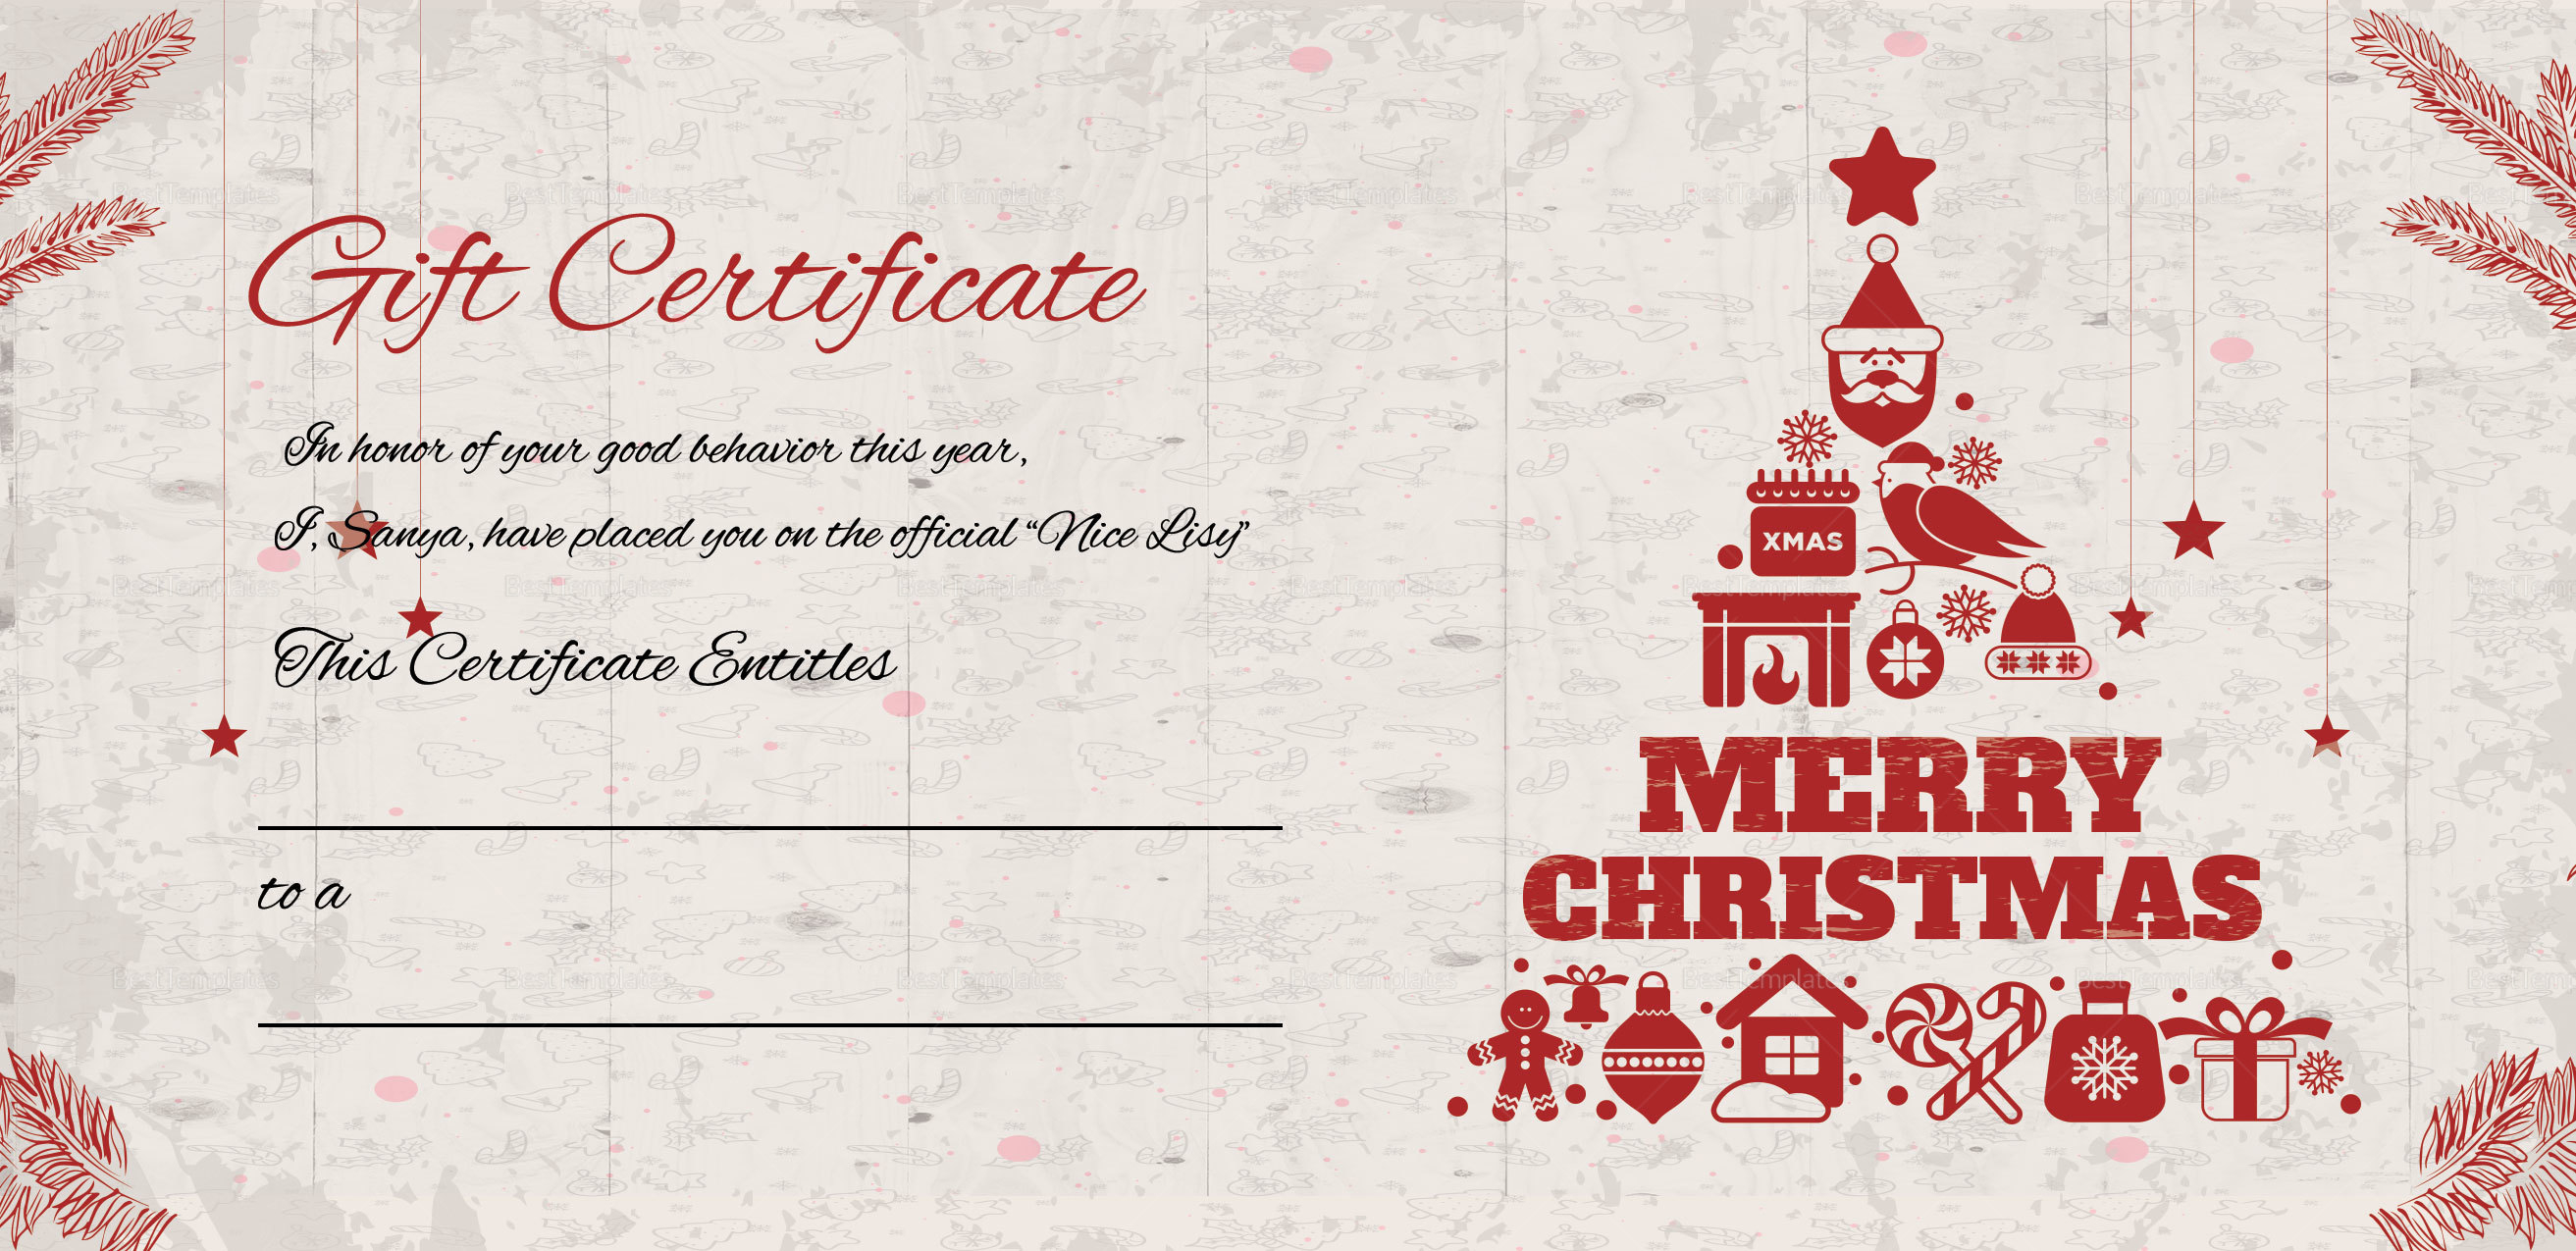 Merry Christmas Gift Certificate Templates 3